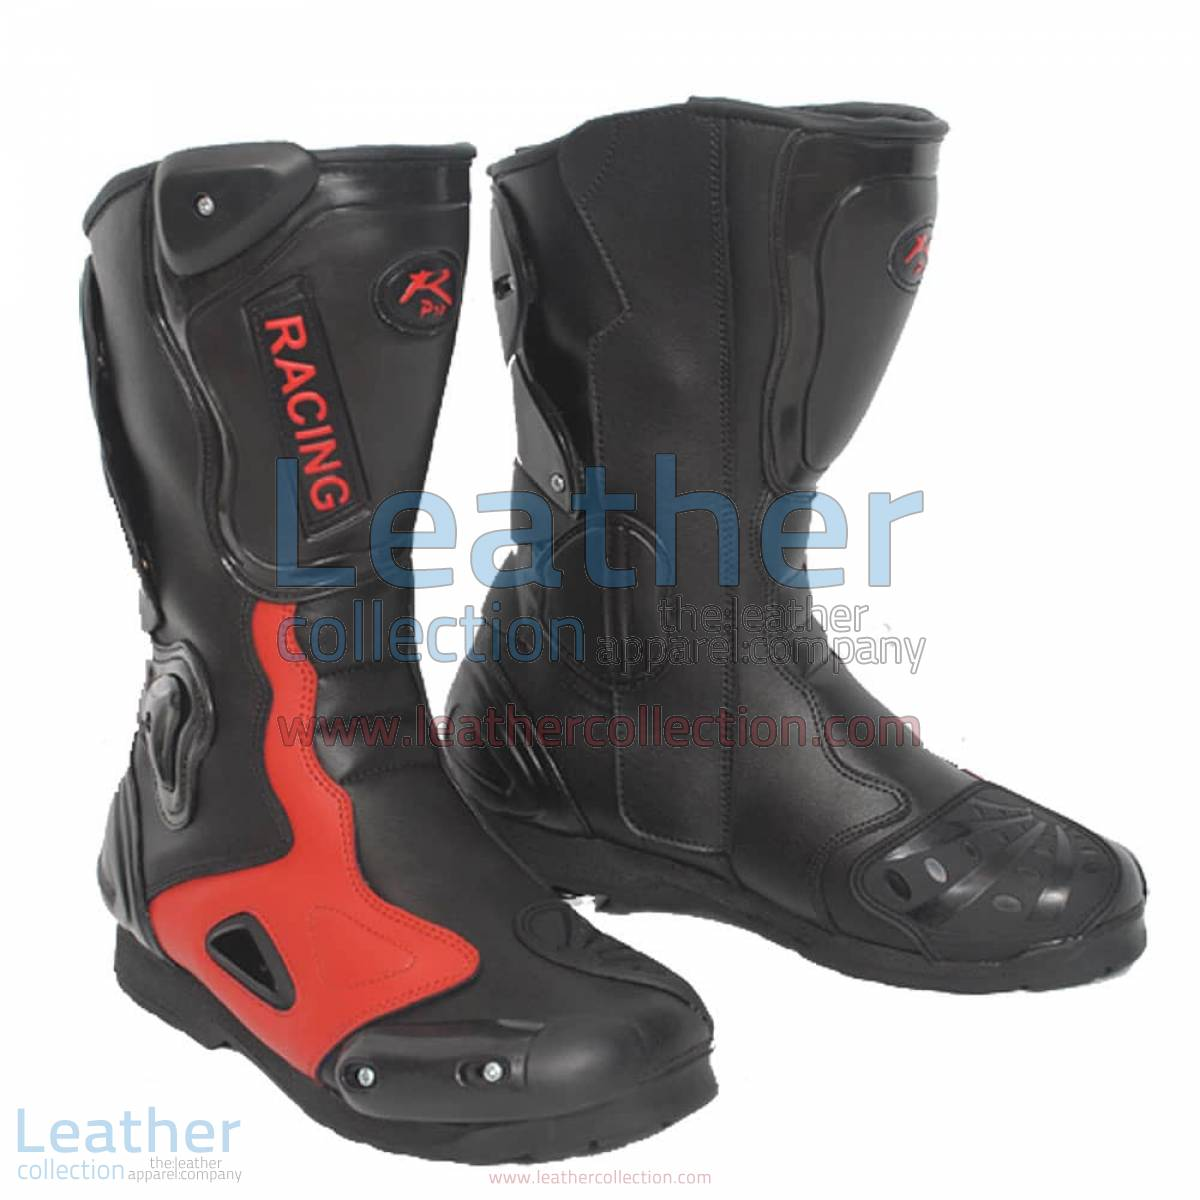 Silverstone Motorcycle Race Boots | motorcycle race boots